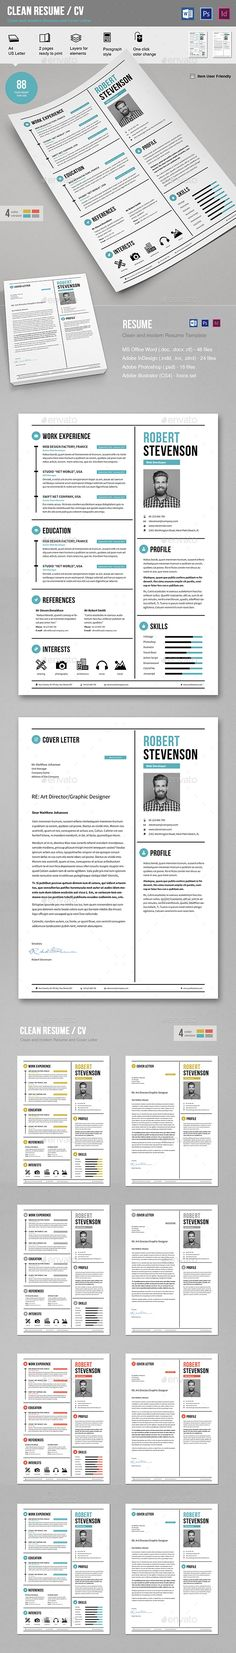 Free PSD  Creative Designer Resume Template PSD Print Ready - product designer resume